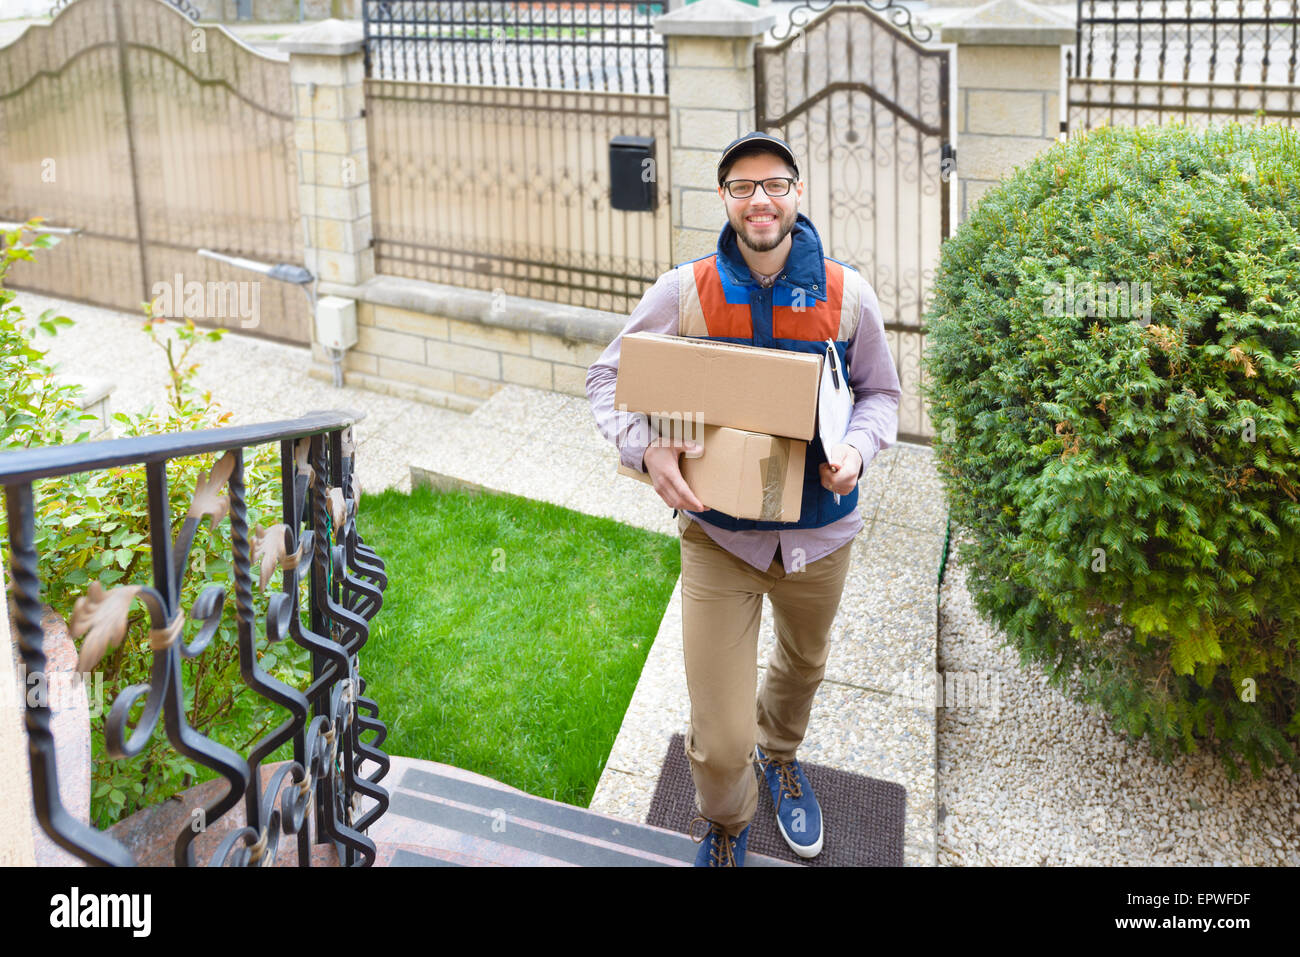 Courier Delivering a Package up on the stairs - Stock Image